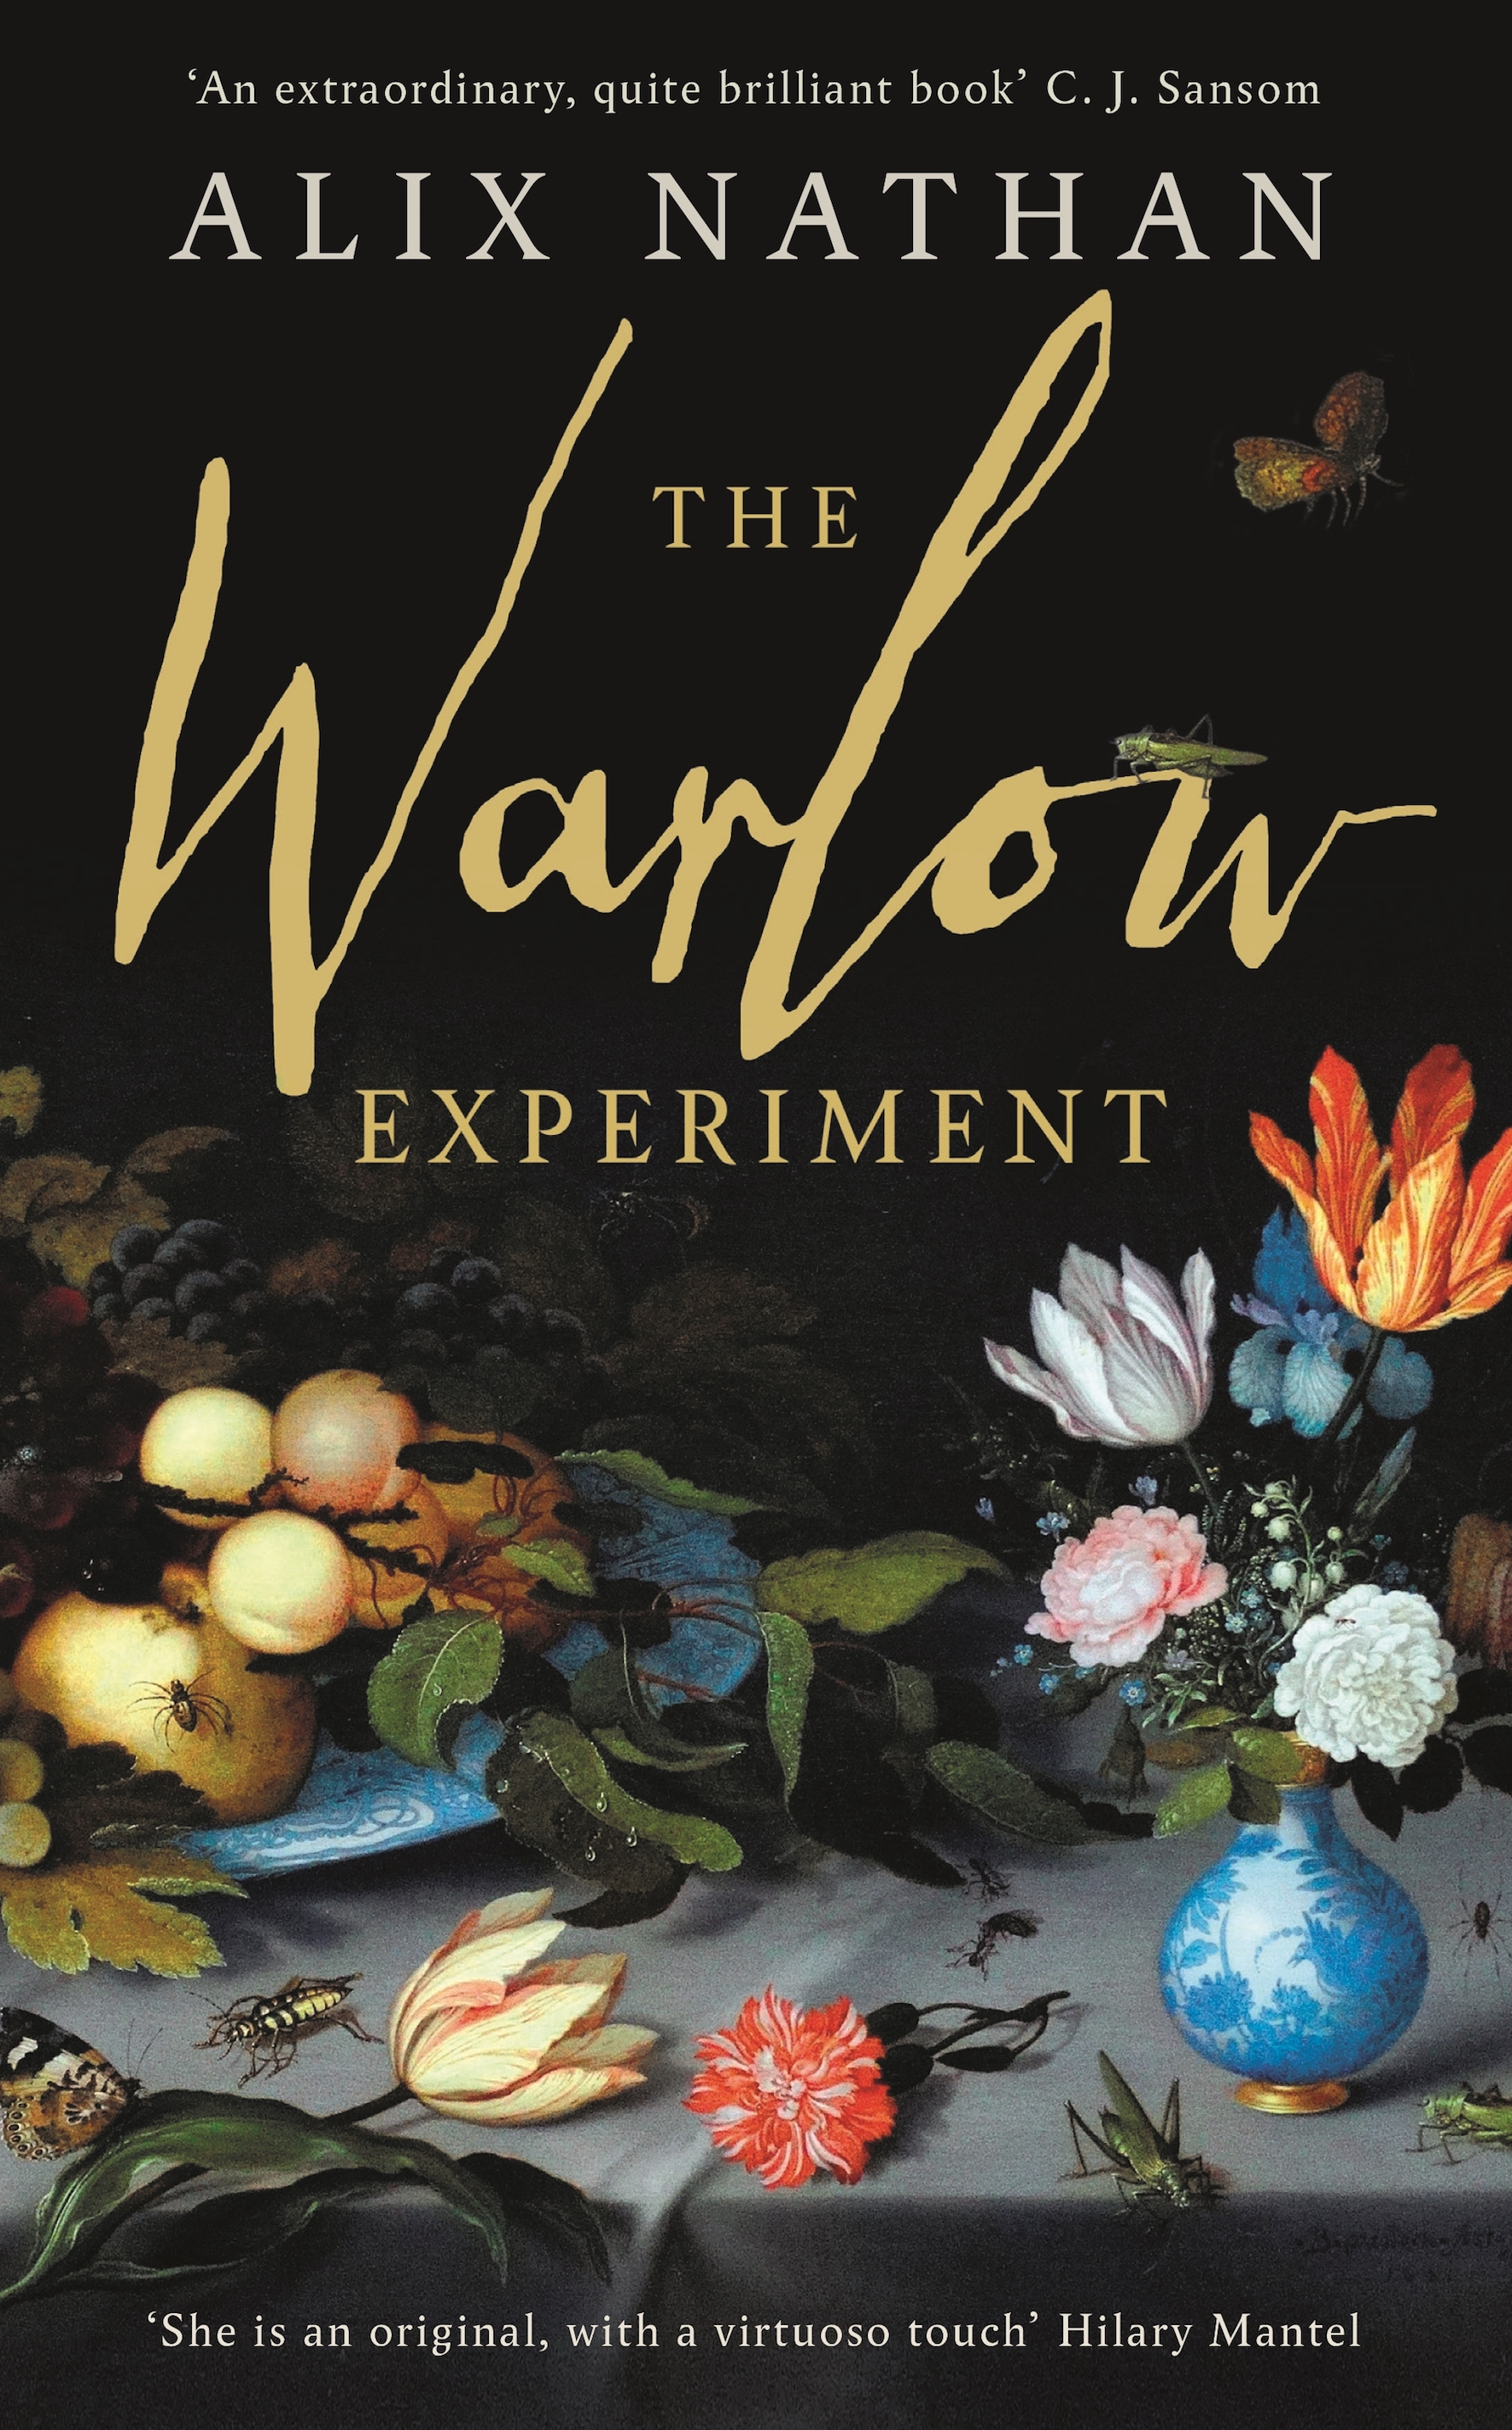 The Warlow Experiment by Alex Nathan